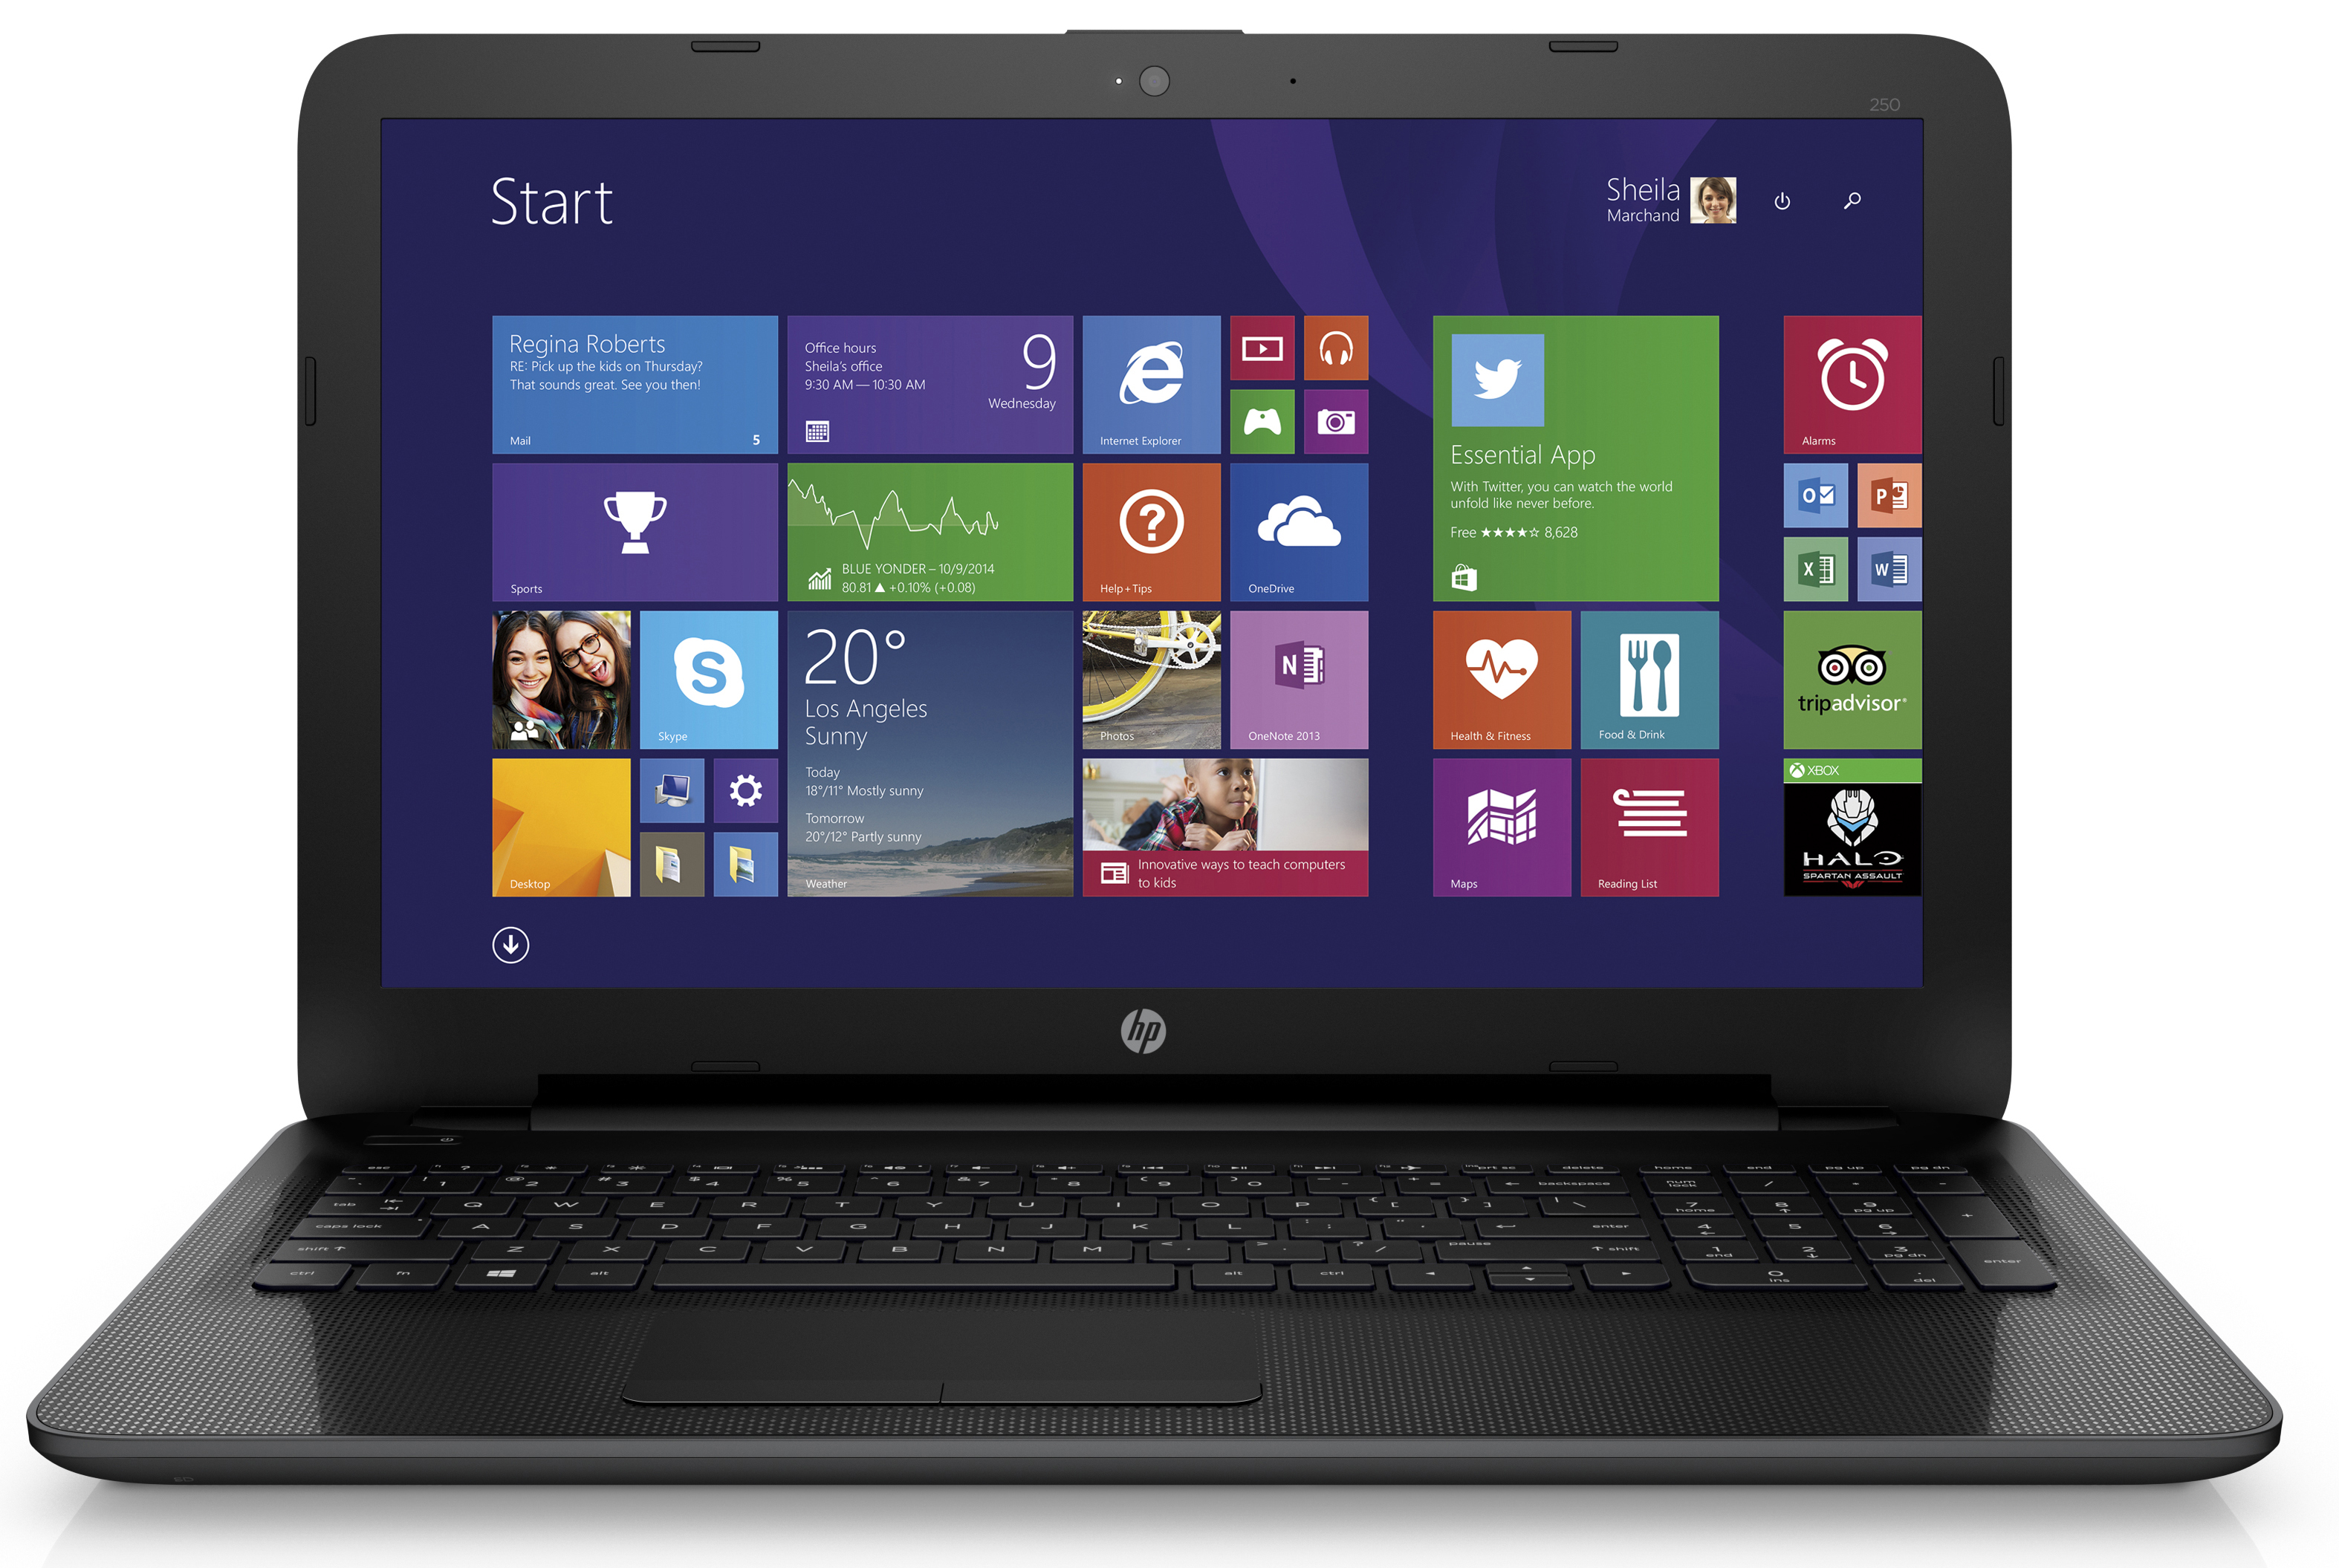 Hp notebook x64-based pc - 3148x2111